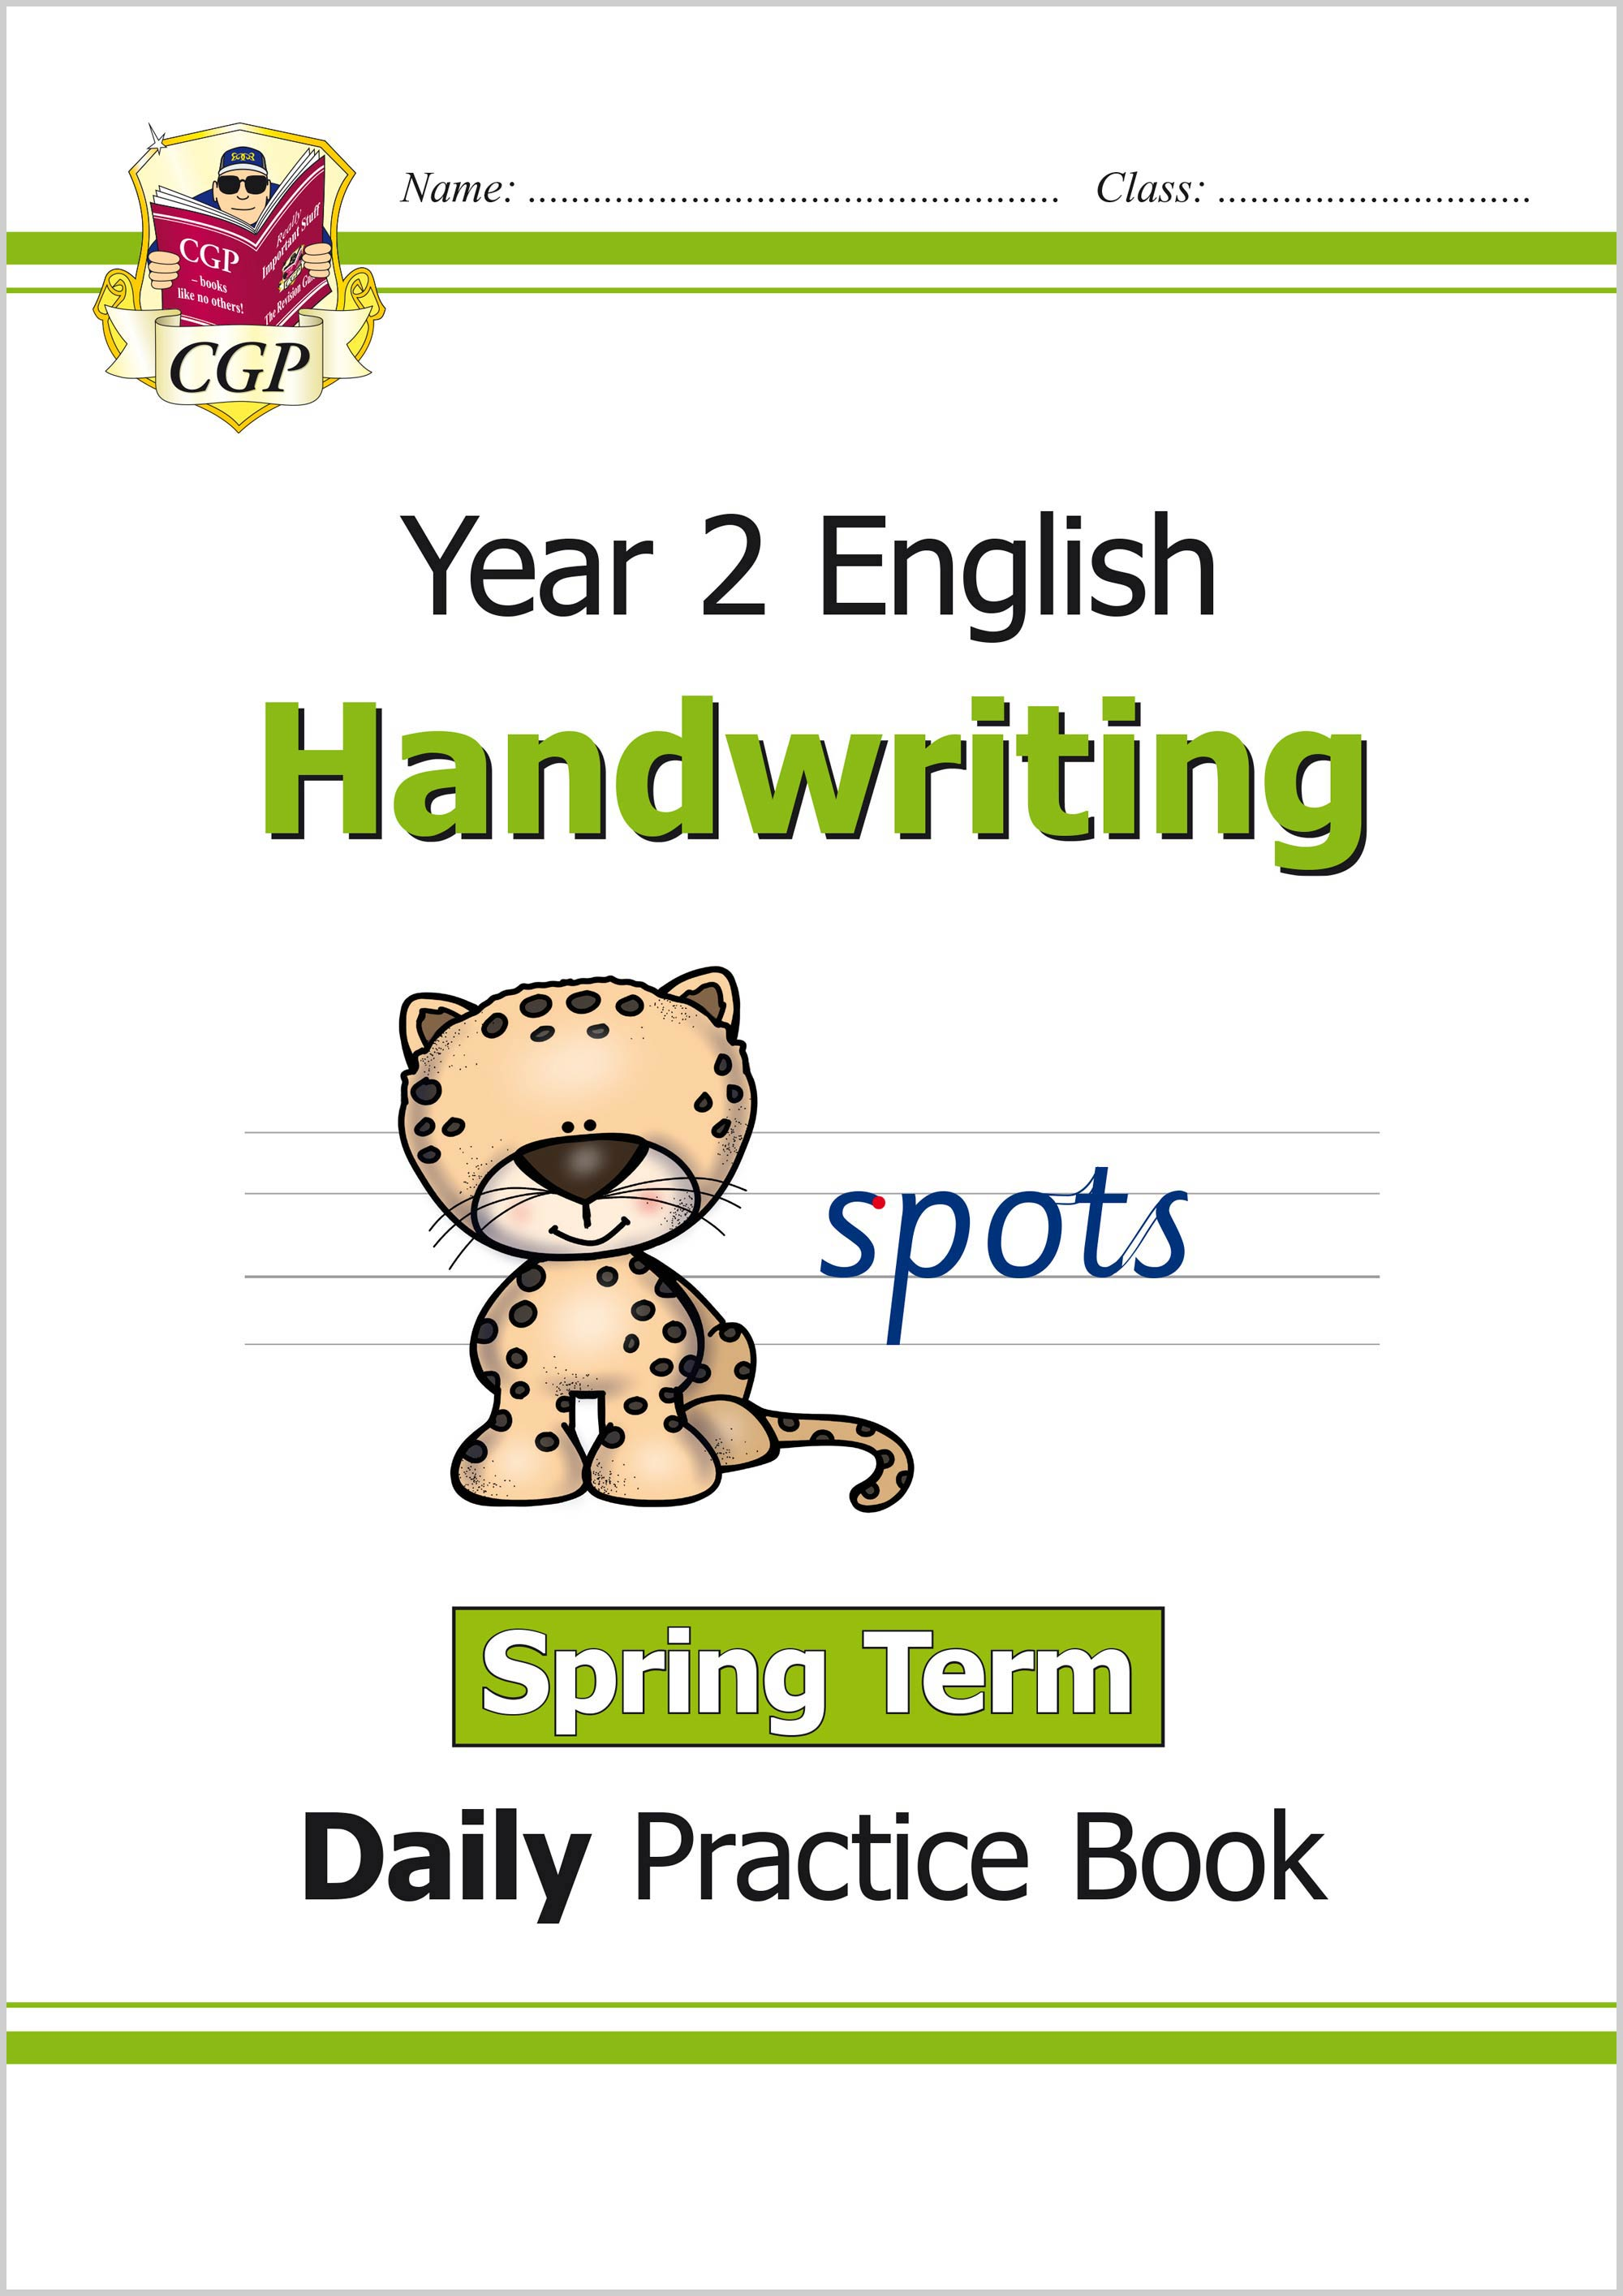 E2HWSP11 - New KS1 Handwriting Daily Practice Book: Year 2 - Spring Term